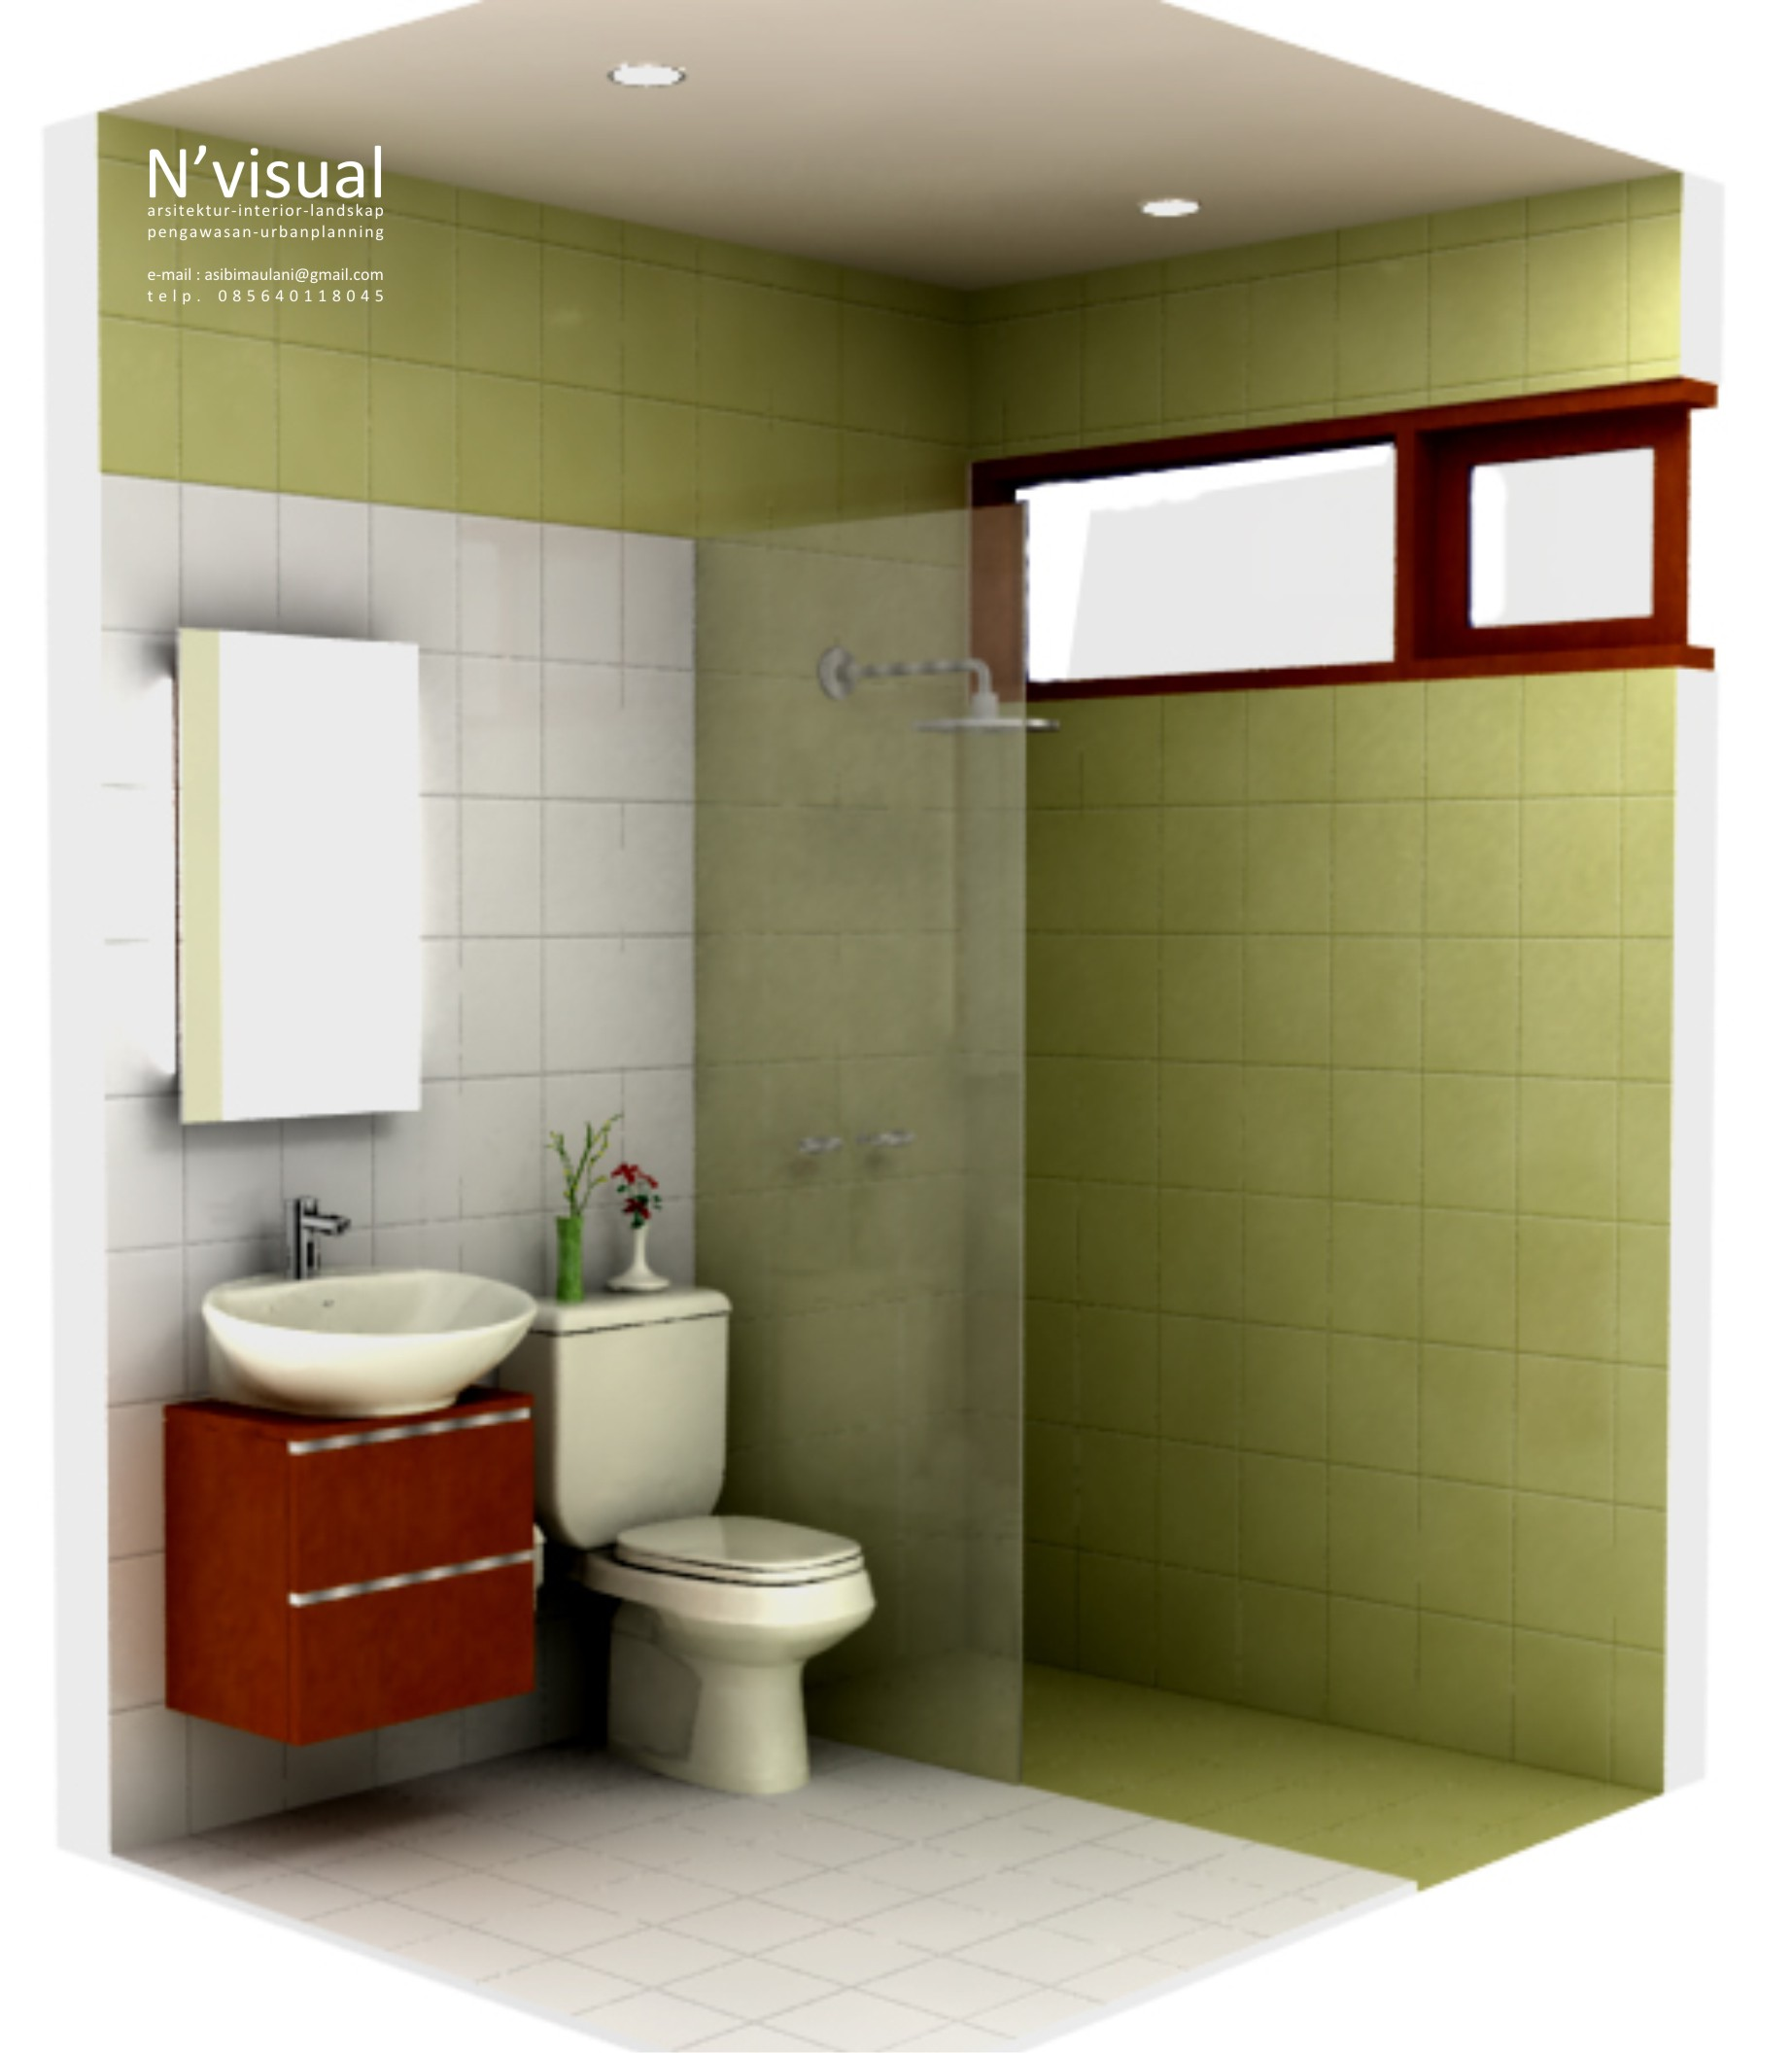 Kamar Mandi 1x1 1000 43 Images About Bathroom Minimalist On Pinterest